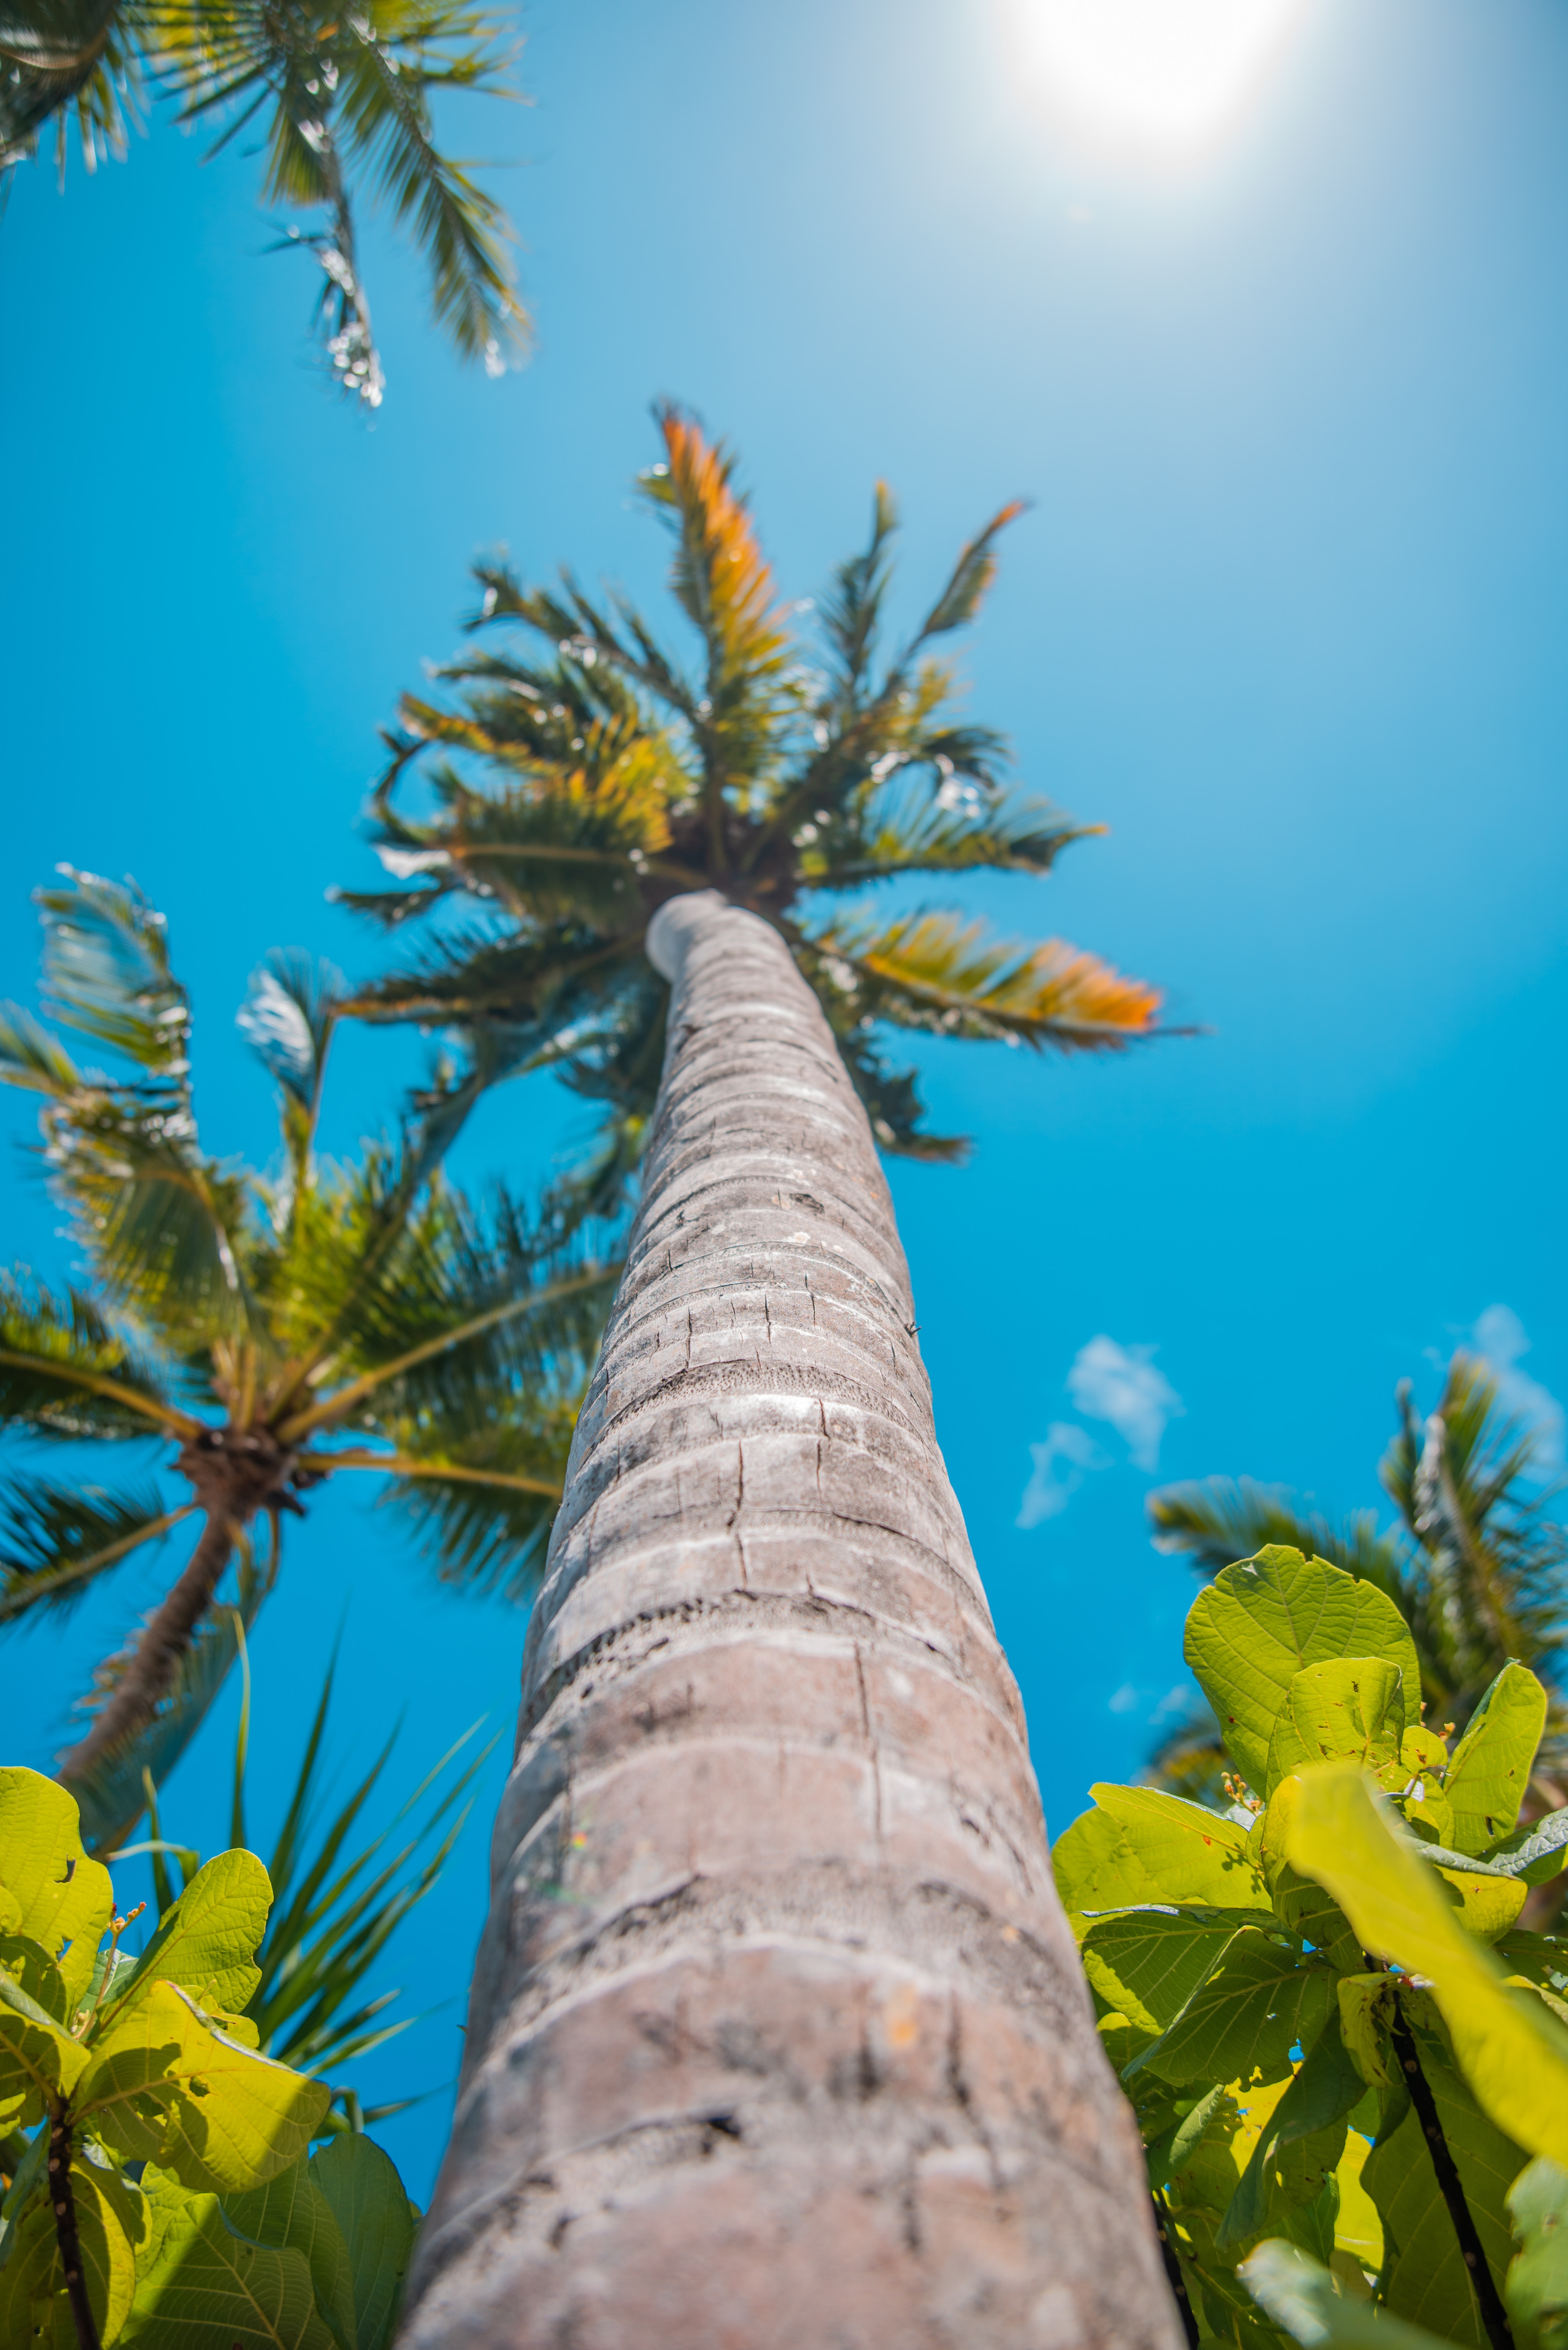 141870 download wallpaper Nature, Palm, Summer, Tropics, Sun screensavers and pictures for free